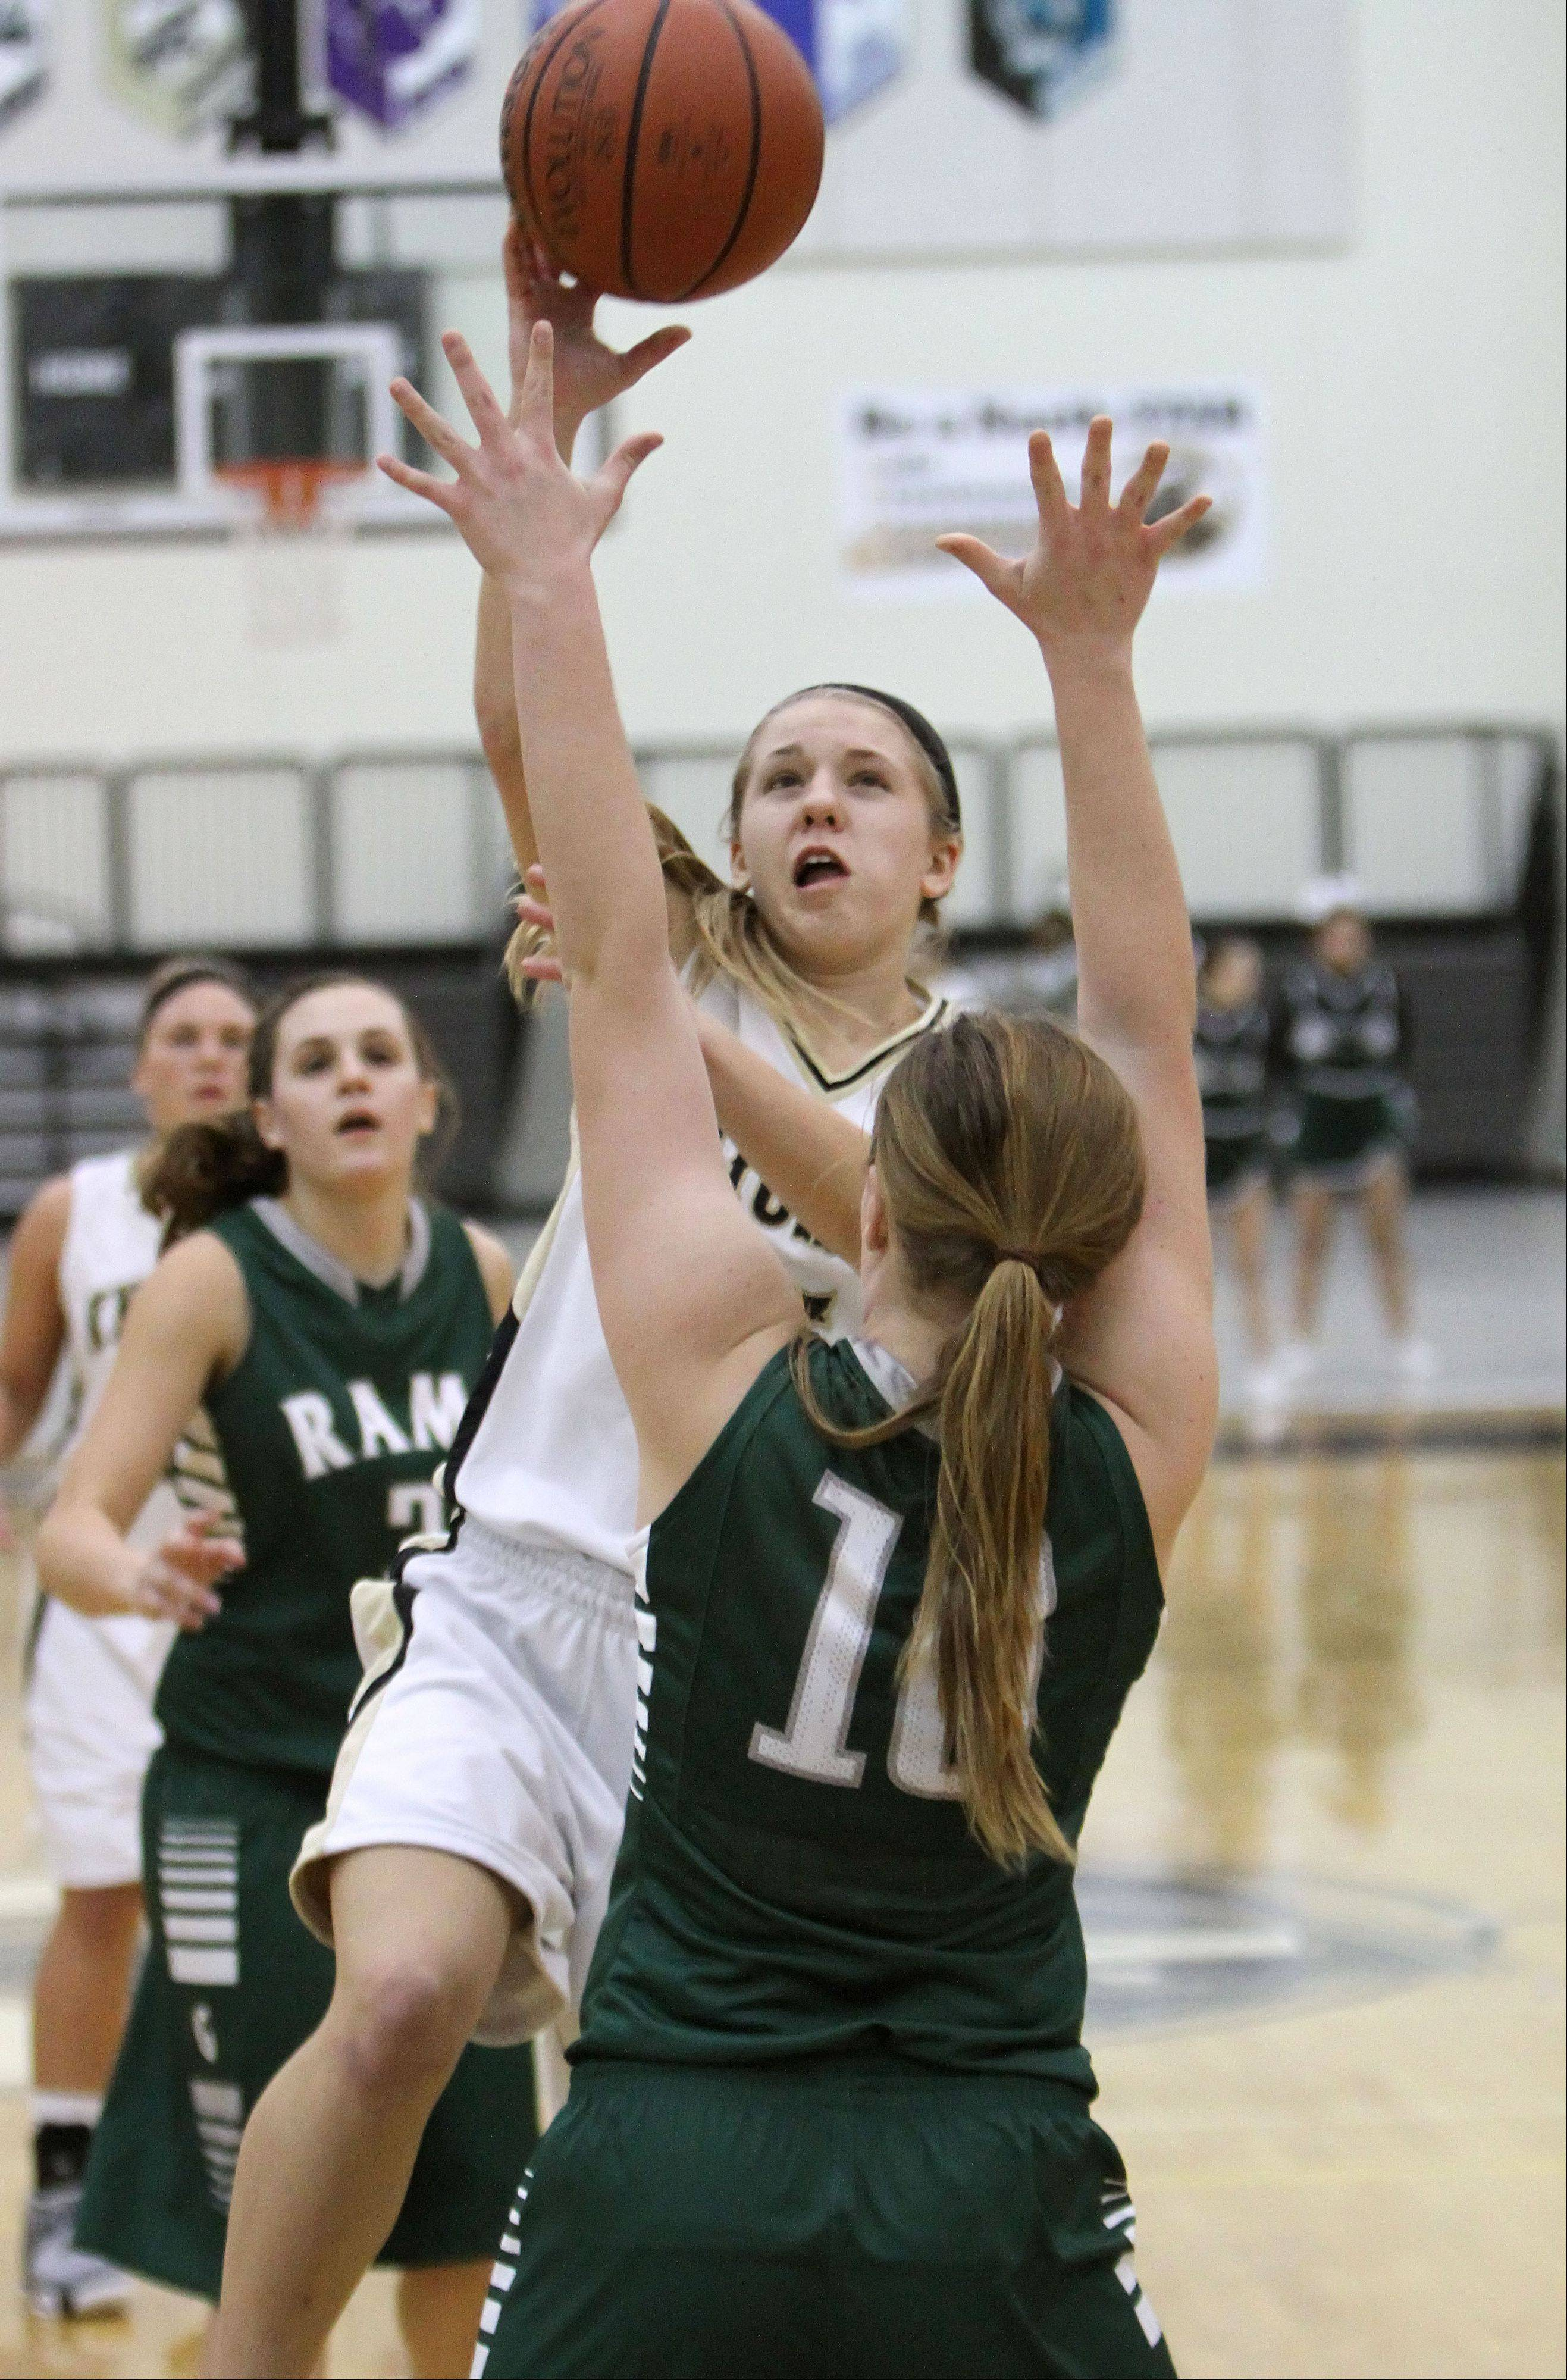 Grayslake North's Kendall Detweiler, left, drives on Grayslake Central's Maddy Miller during their game Wednesday night at Grayslake North High School.